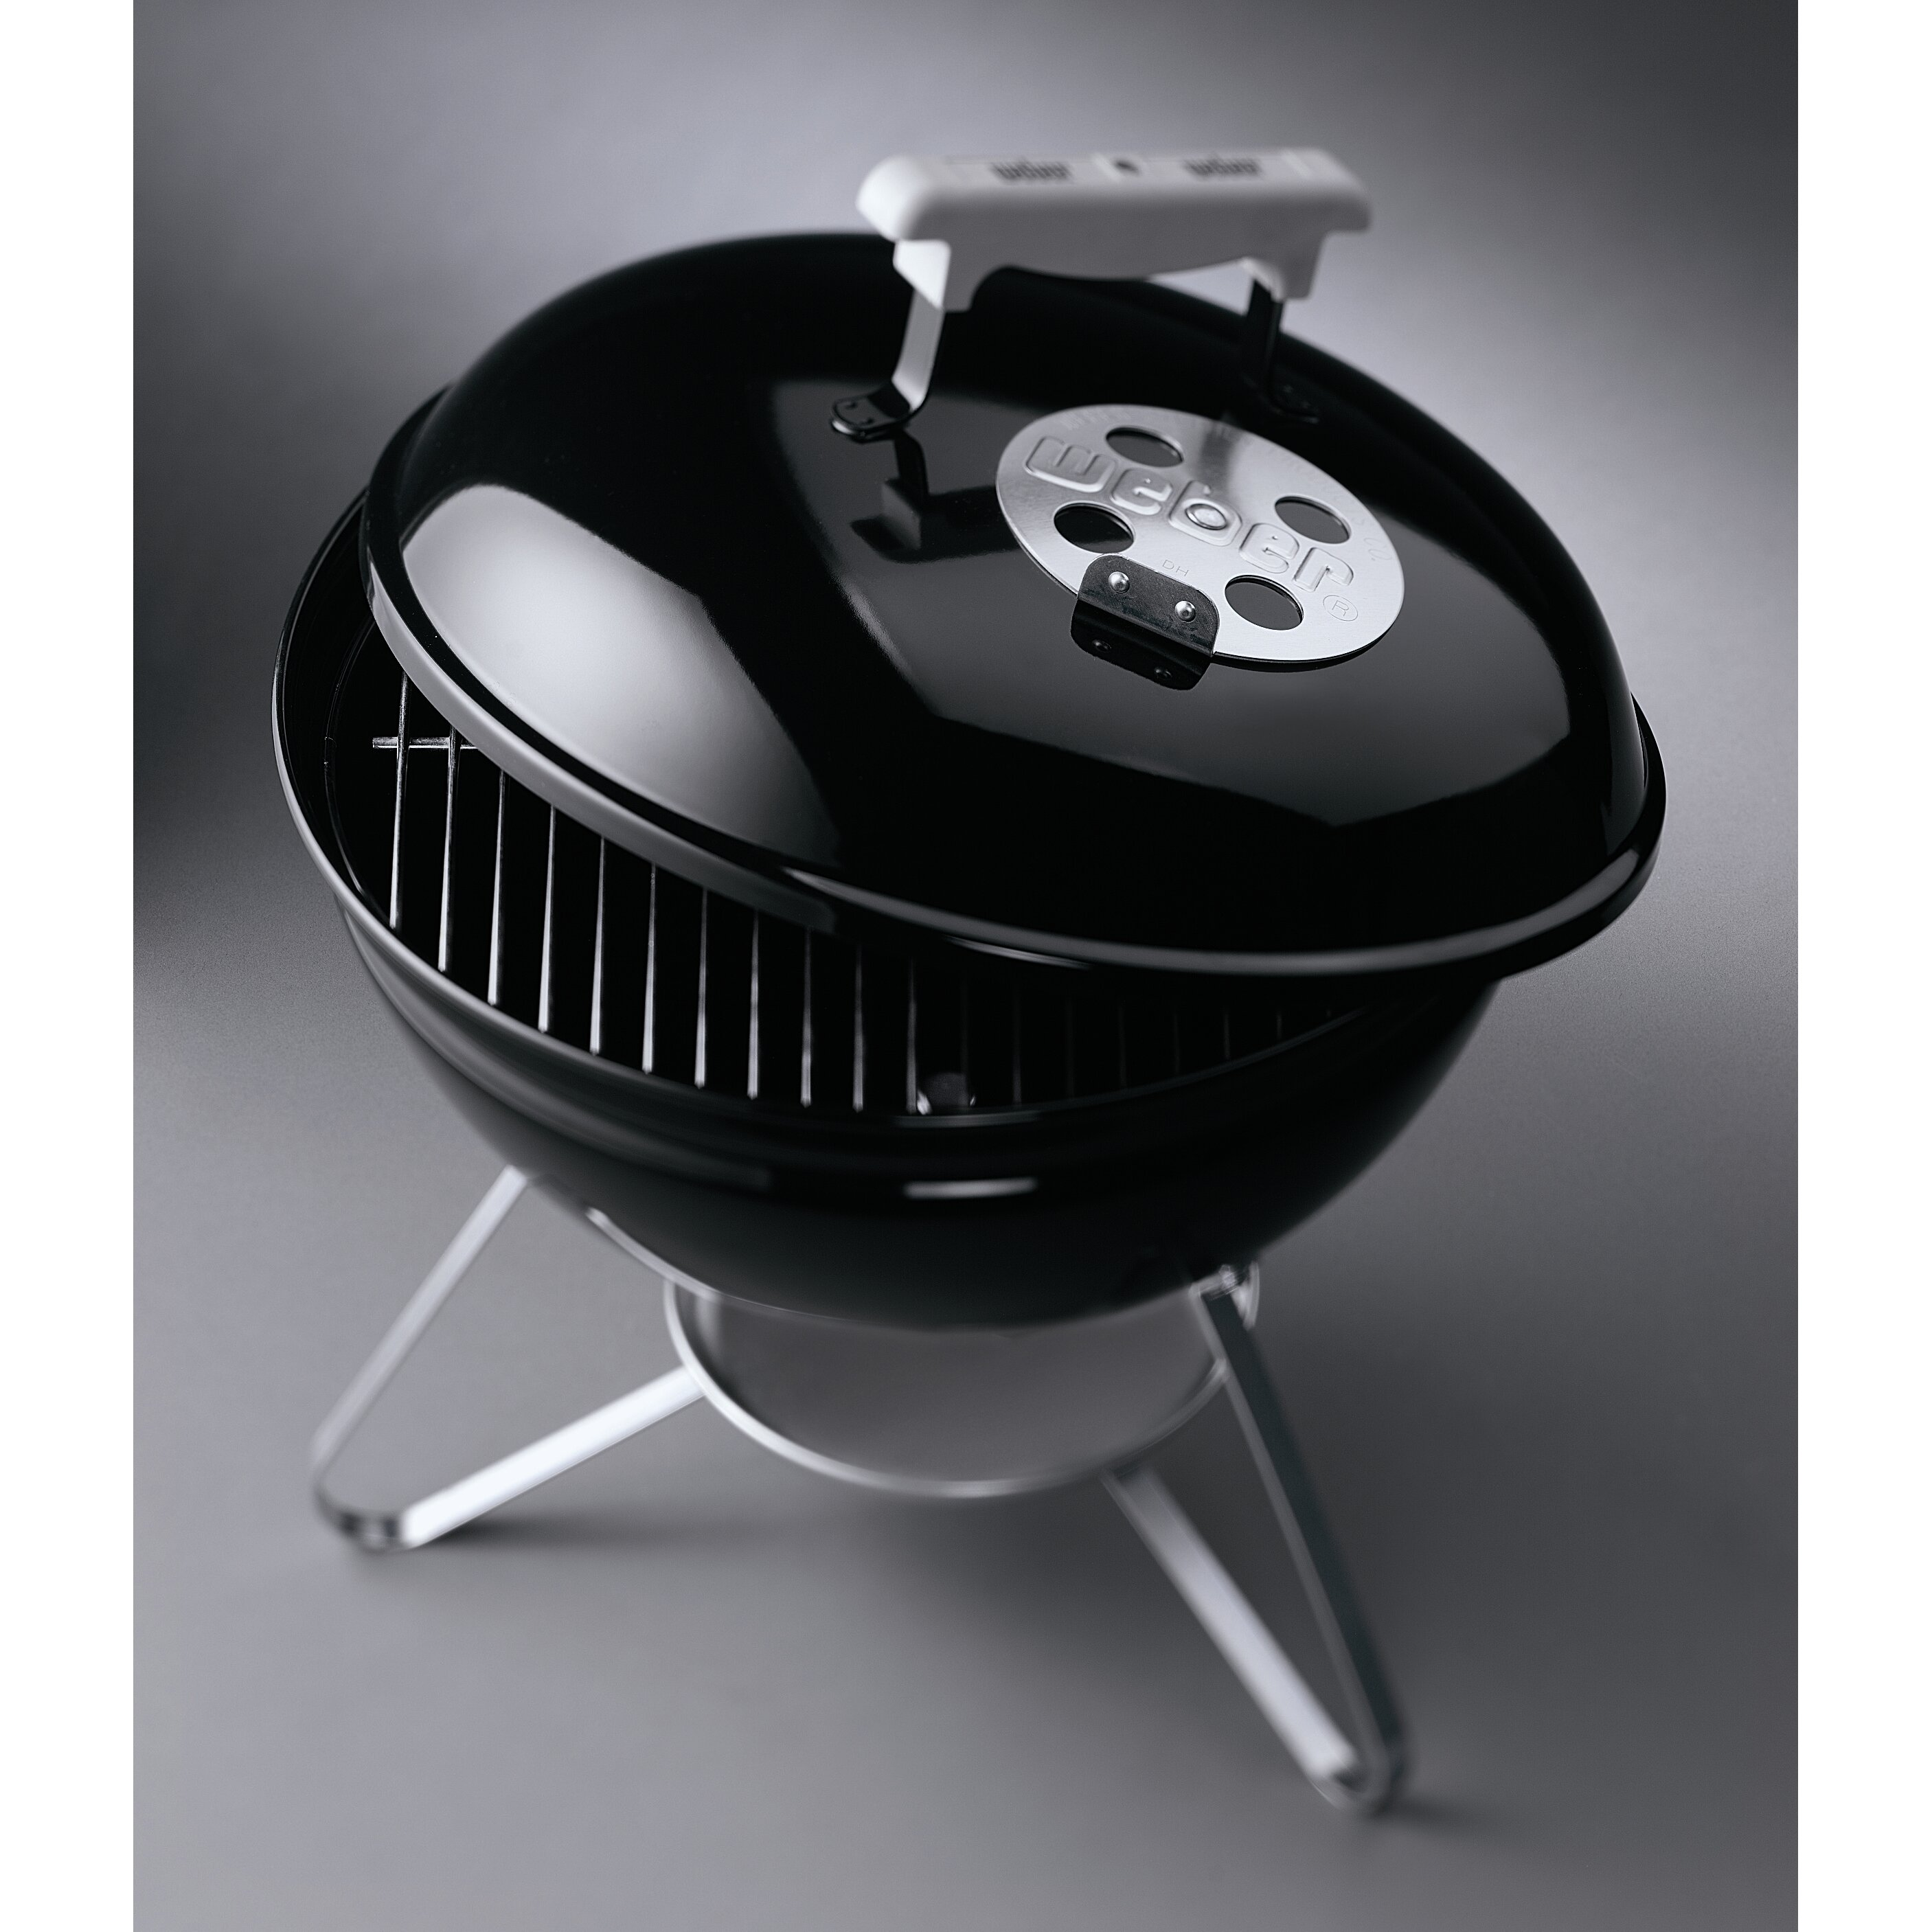 weber smokey joe silver charcoal grill reviews. Black Bedroom Furniture Sets. Home Design Ideas